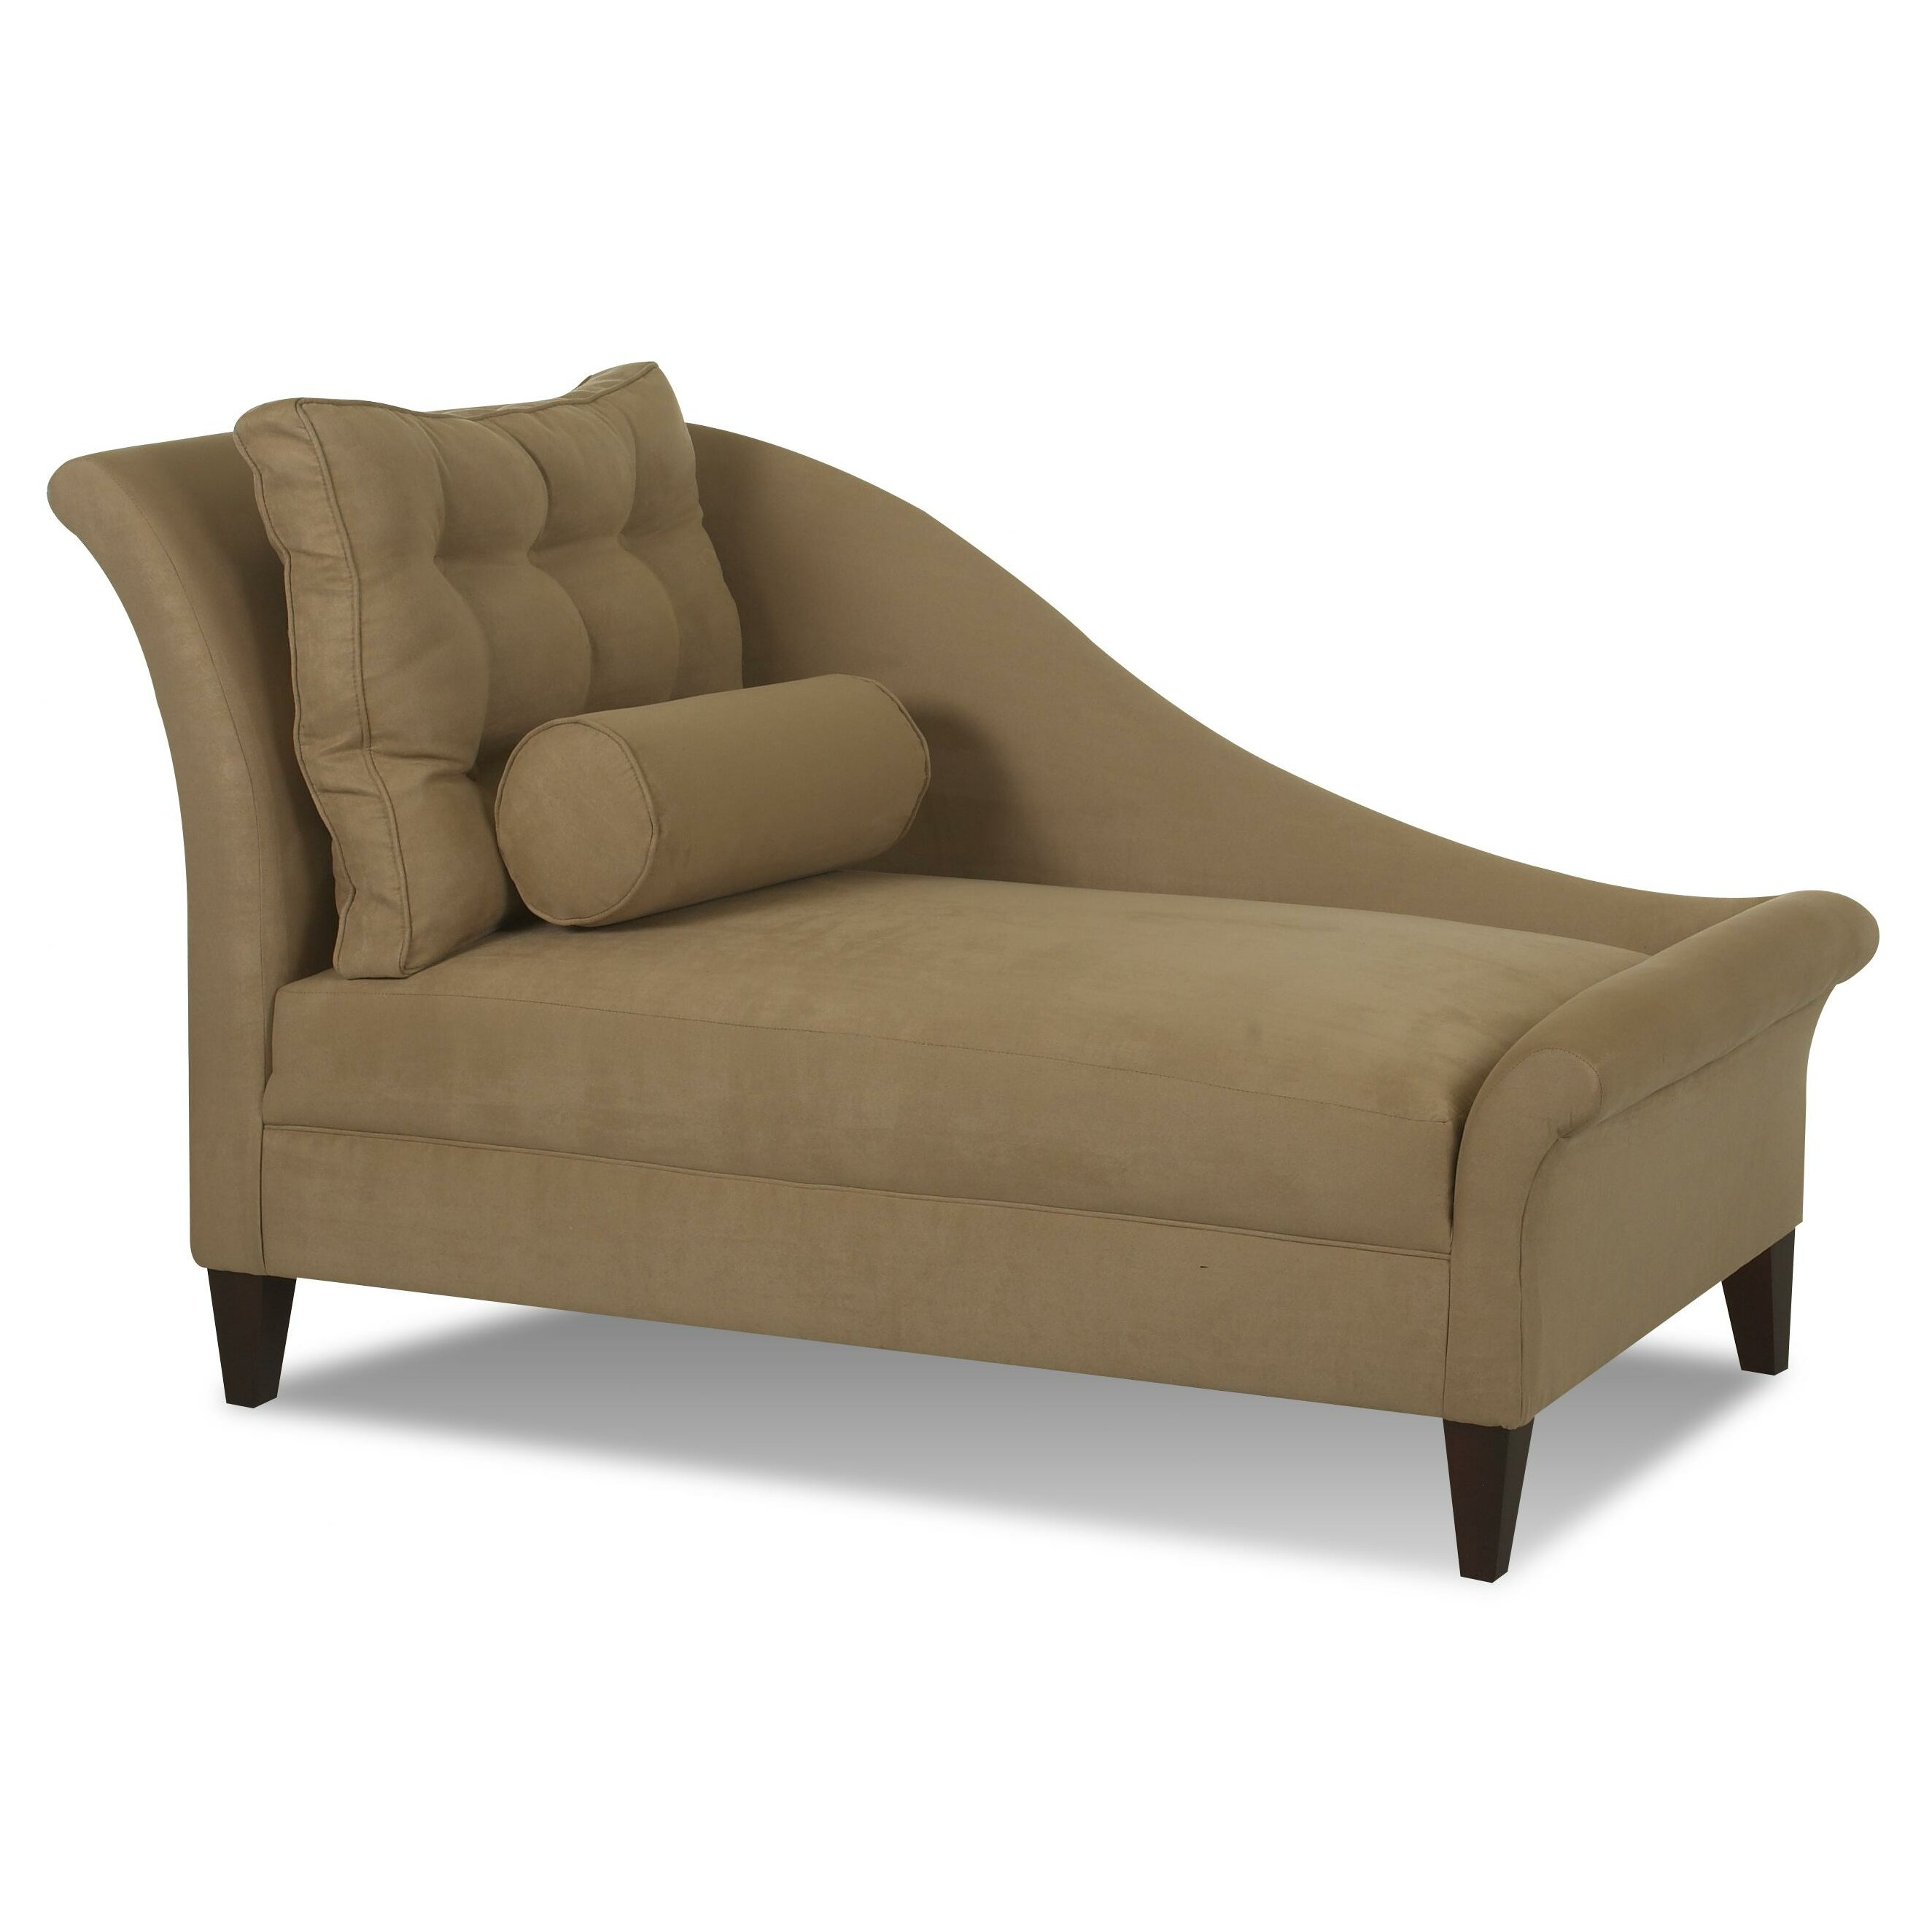 Klaussner furniture park right arm facing chaise lounge for 2 arm chaise lounge